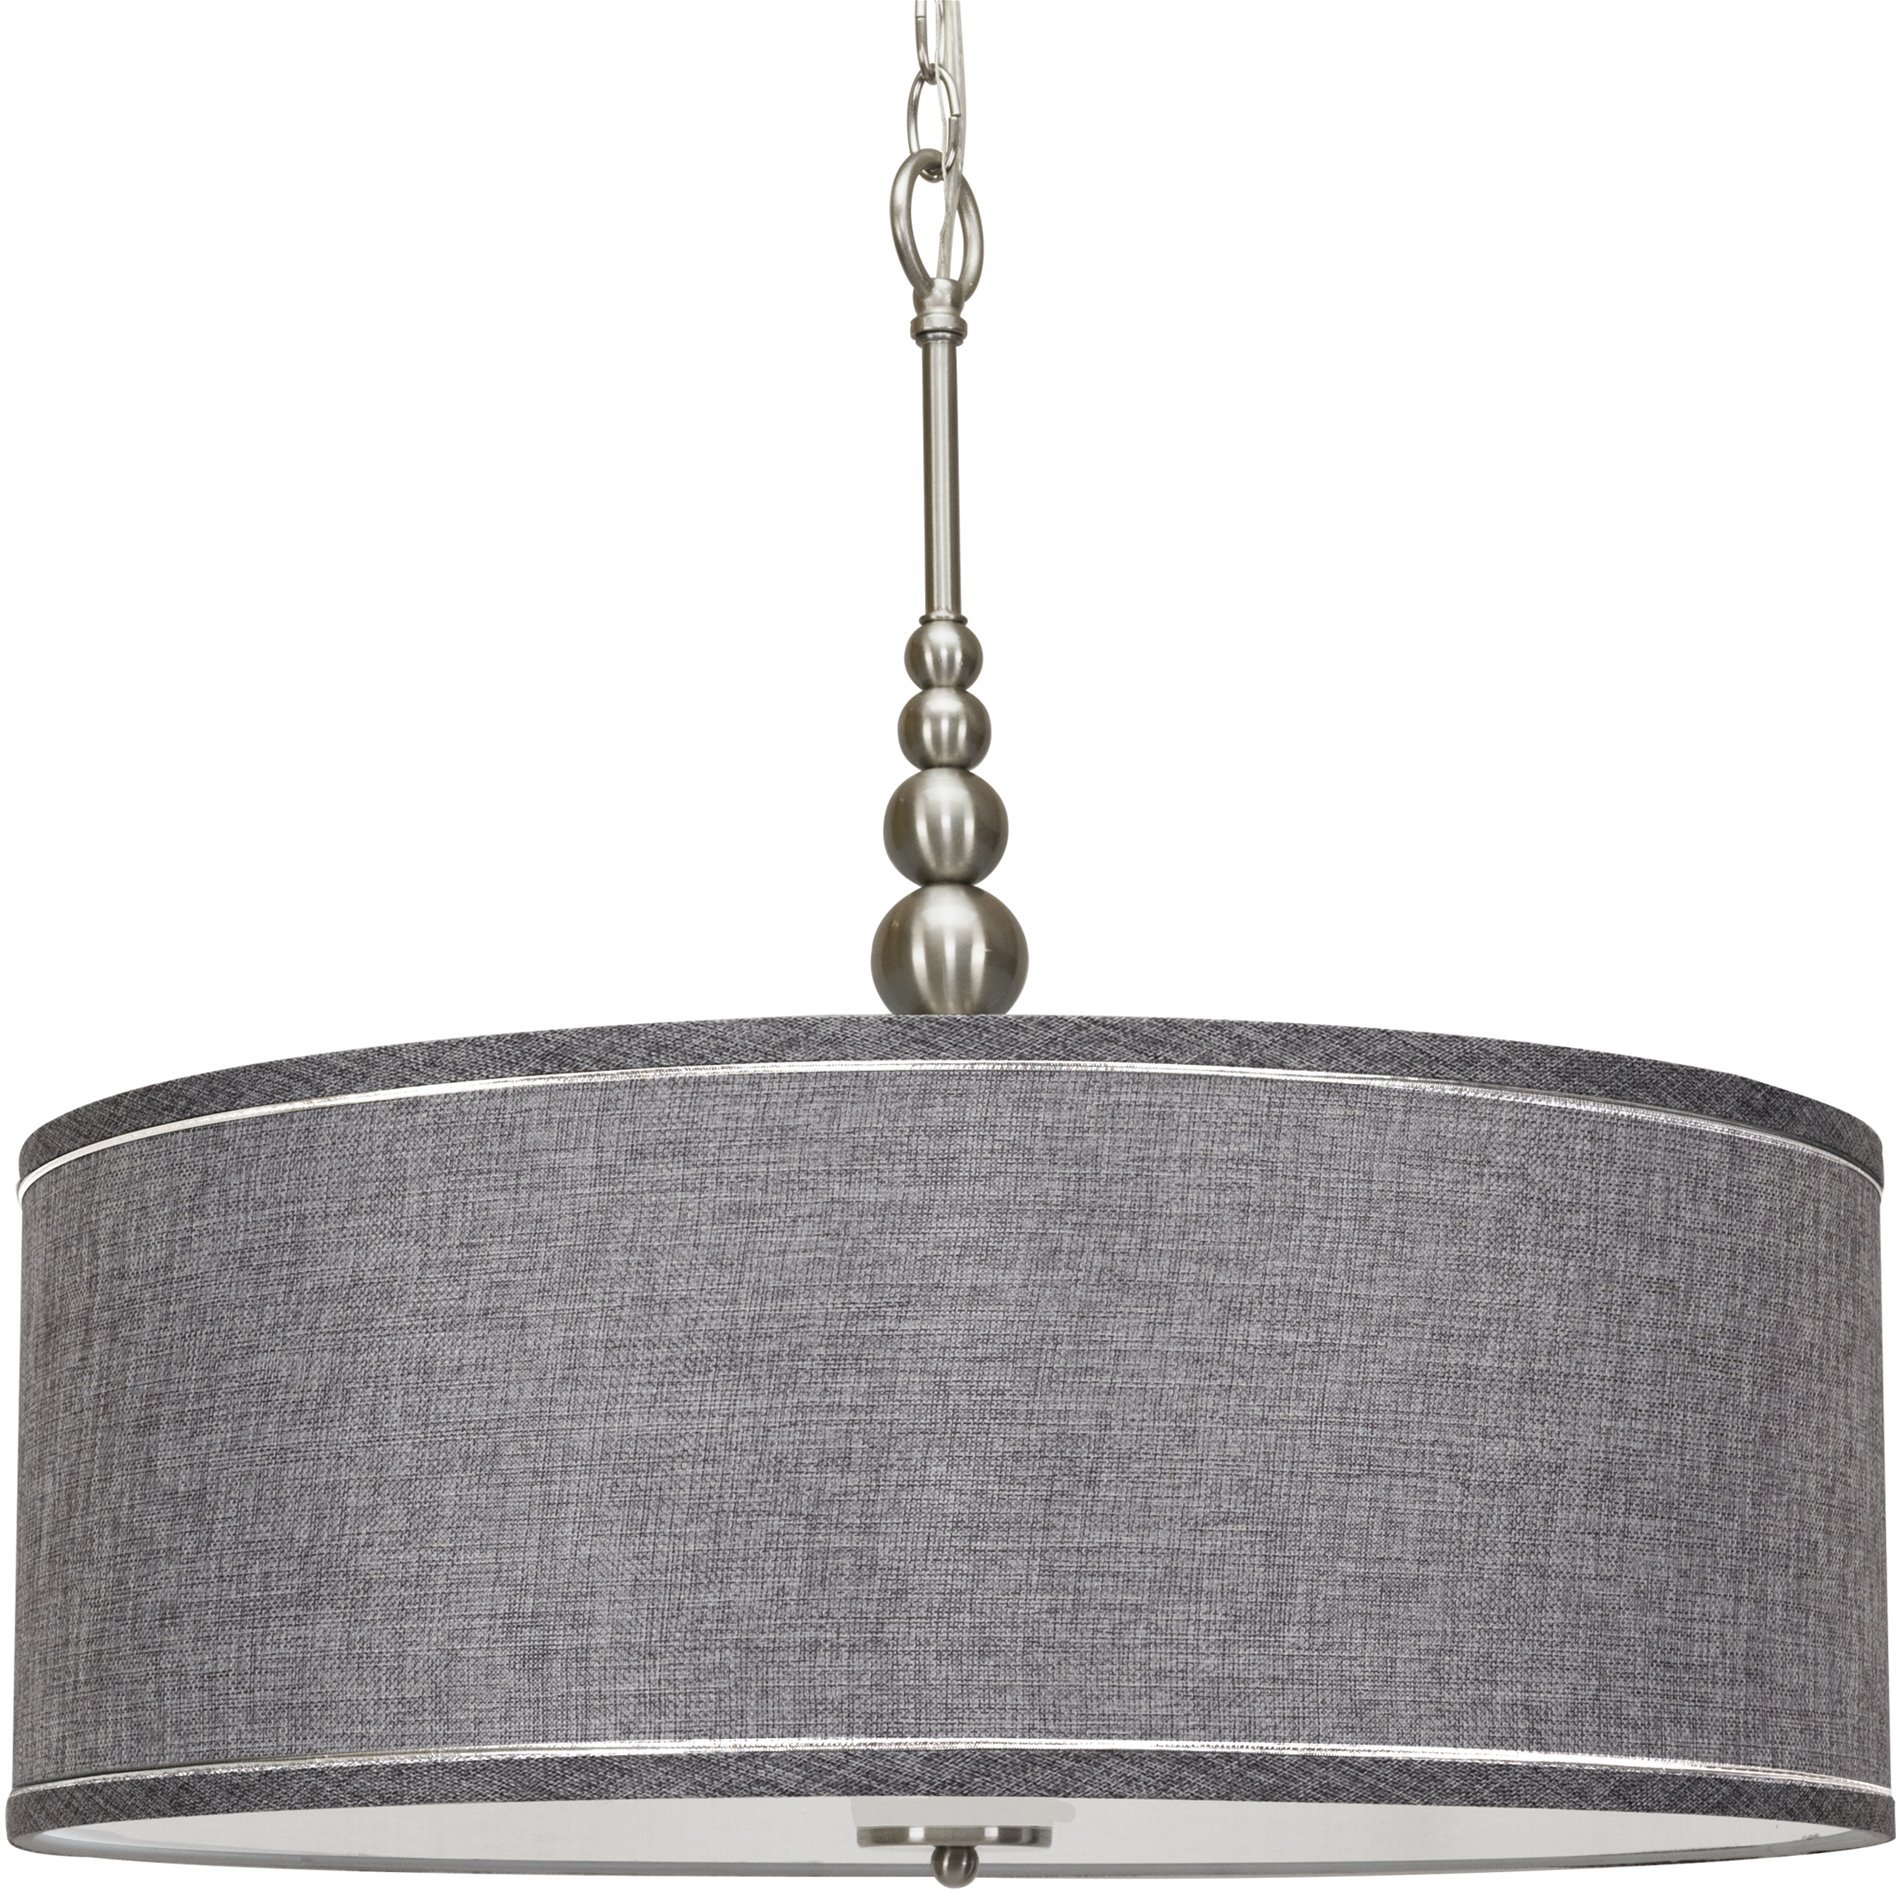 Kira Home Adelade 22'' Modern 3-Light Drum Pendant Chandelier, Gray Fabric Shade, Tempered Glass Diffuser, Adjustable Height, Brushed Nickel Finish